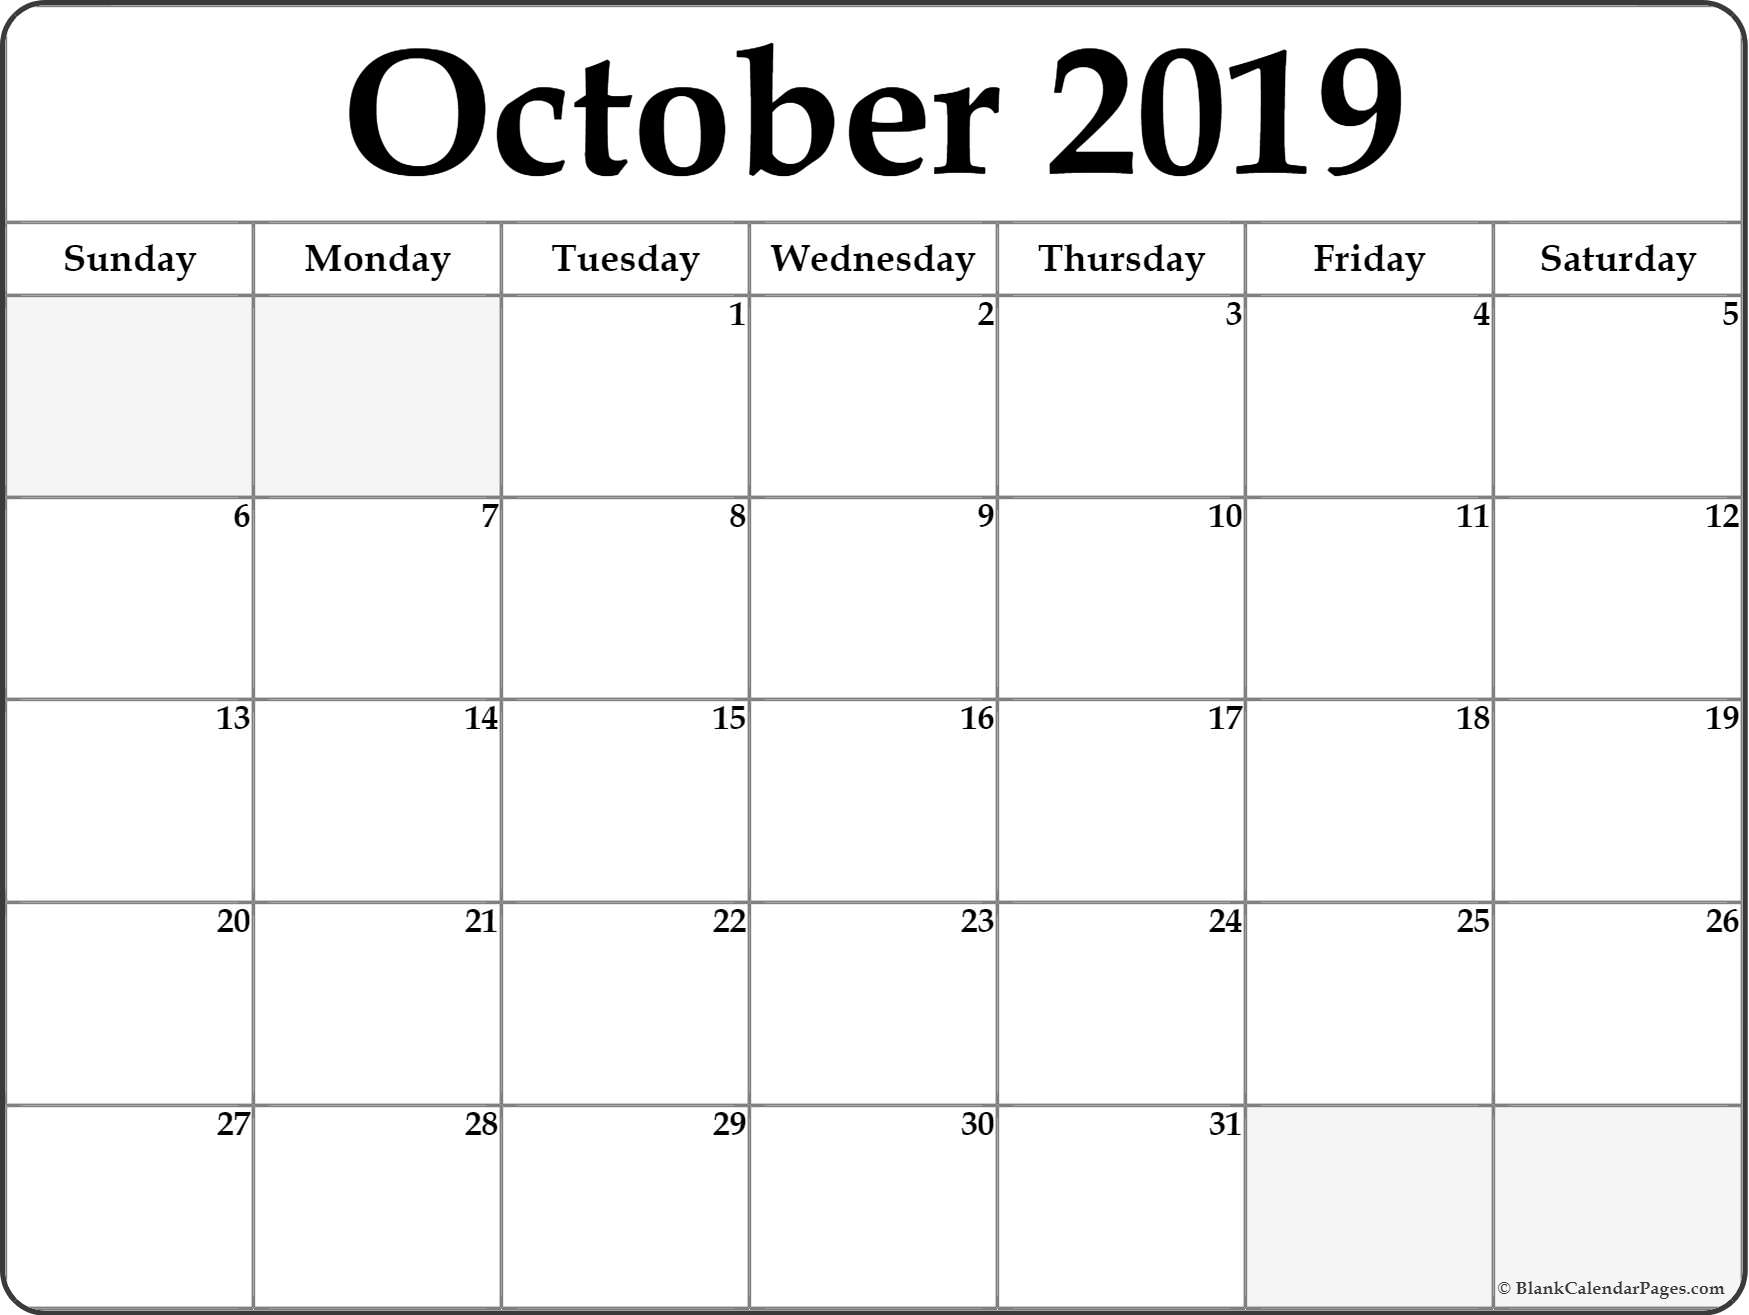 October 2019 Calendar | Free Printable Monthly Calendars in October Blank Calendar Monday To Friday Only